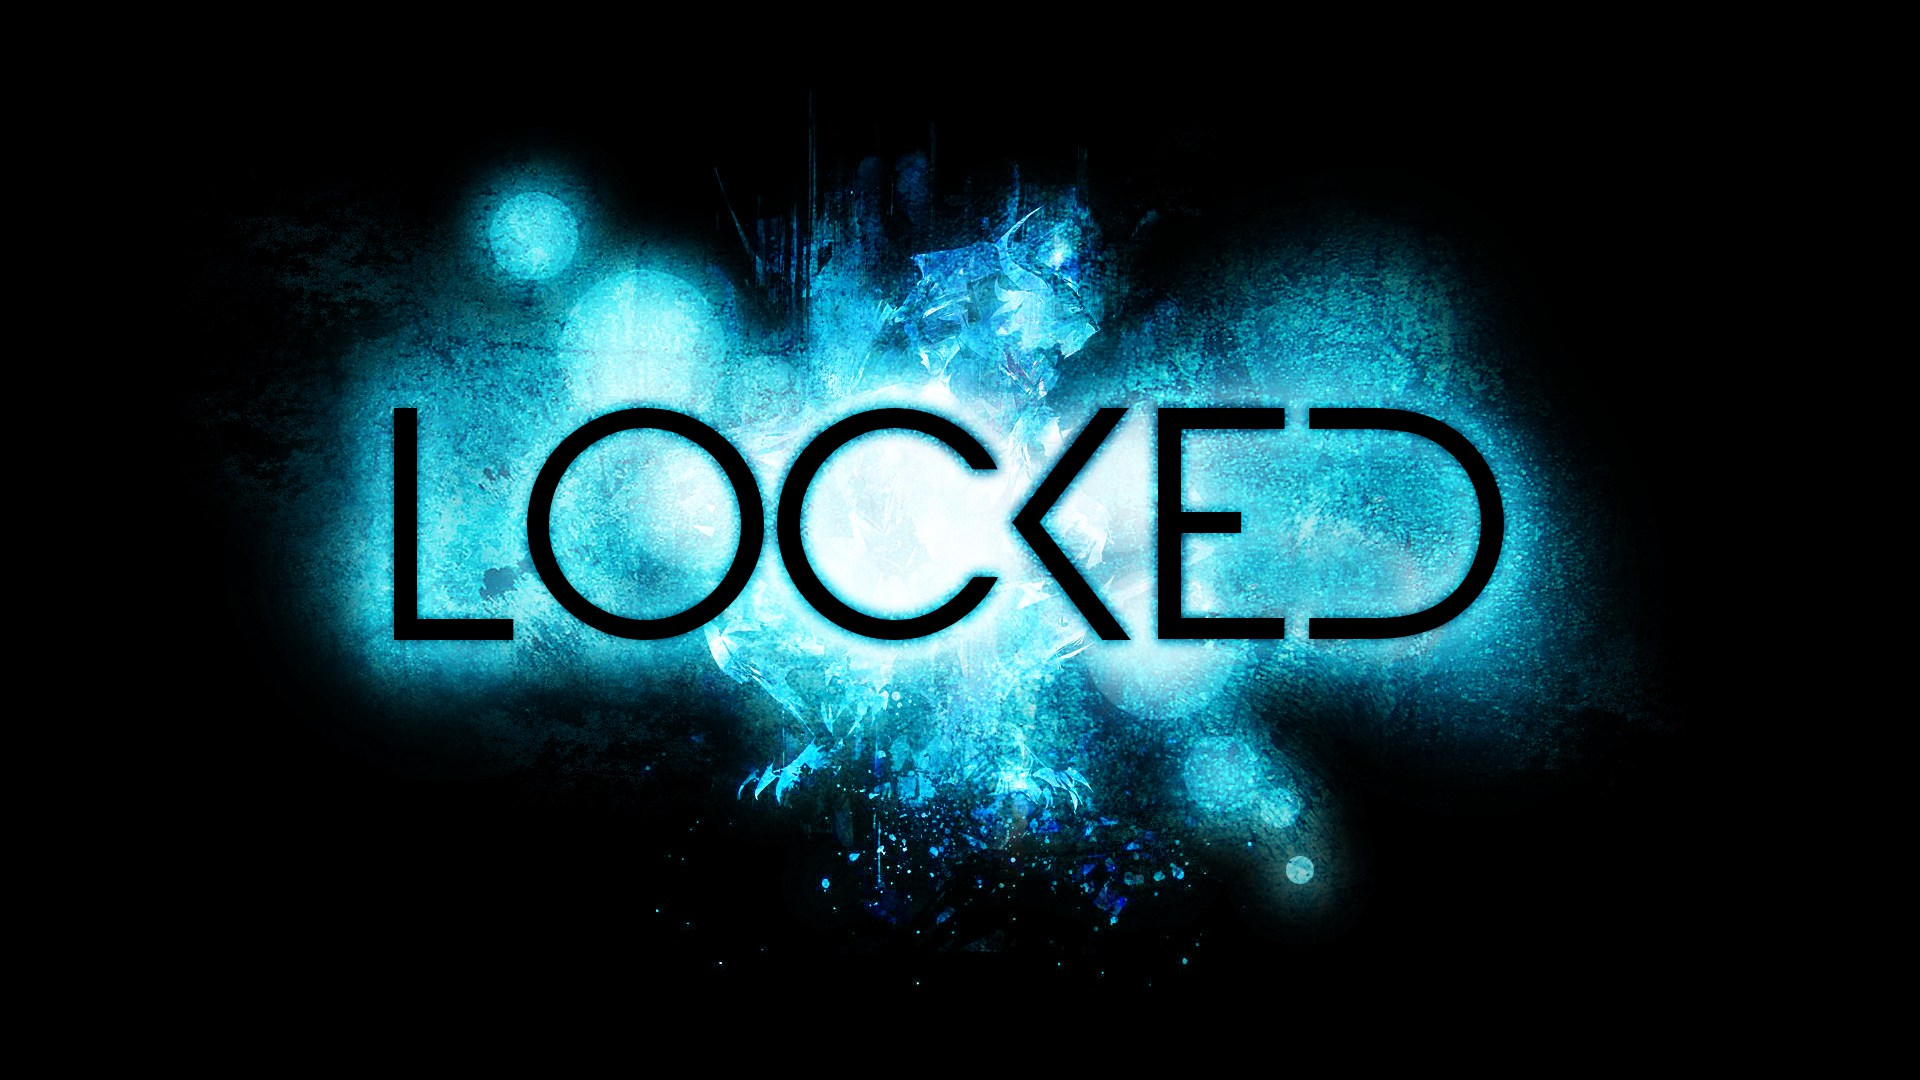 Cool Lock Screen Wallpapers For PC, Android, iPhone